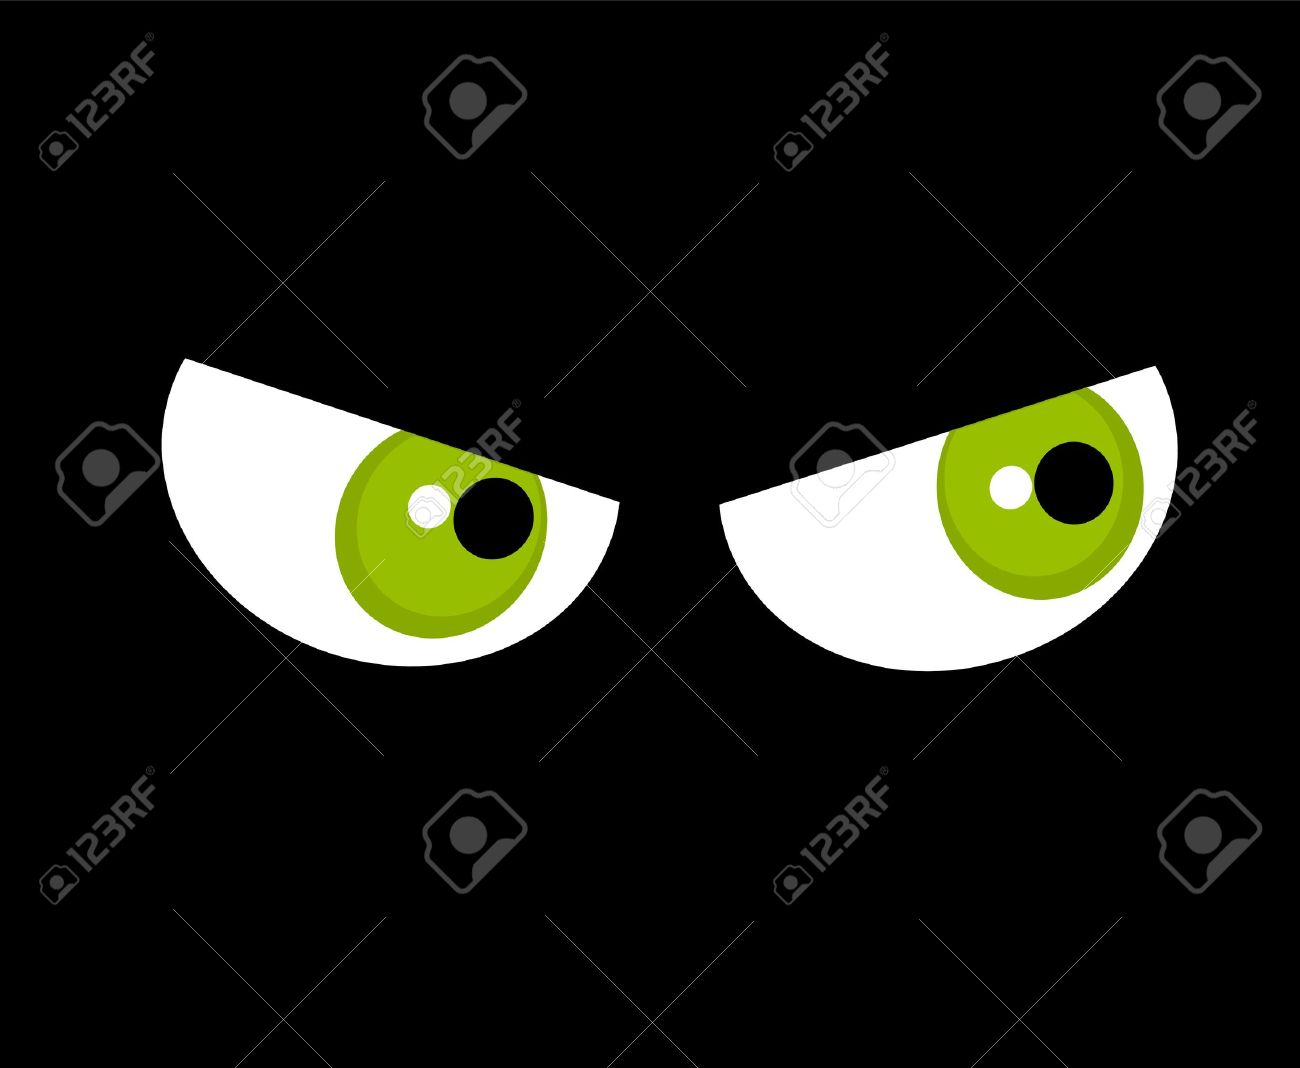 Angry Green Eyes Halloween Royalty Free Cliparts Vectors And Stock Illustration Image 16016695